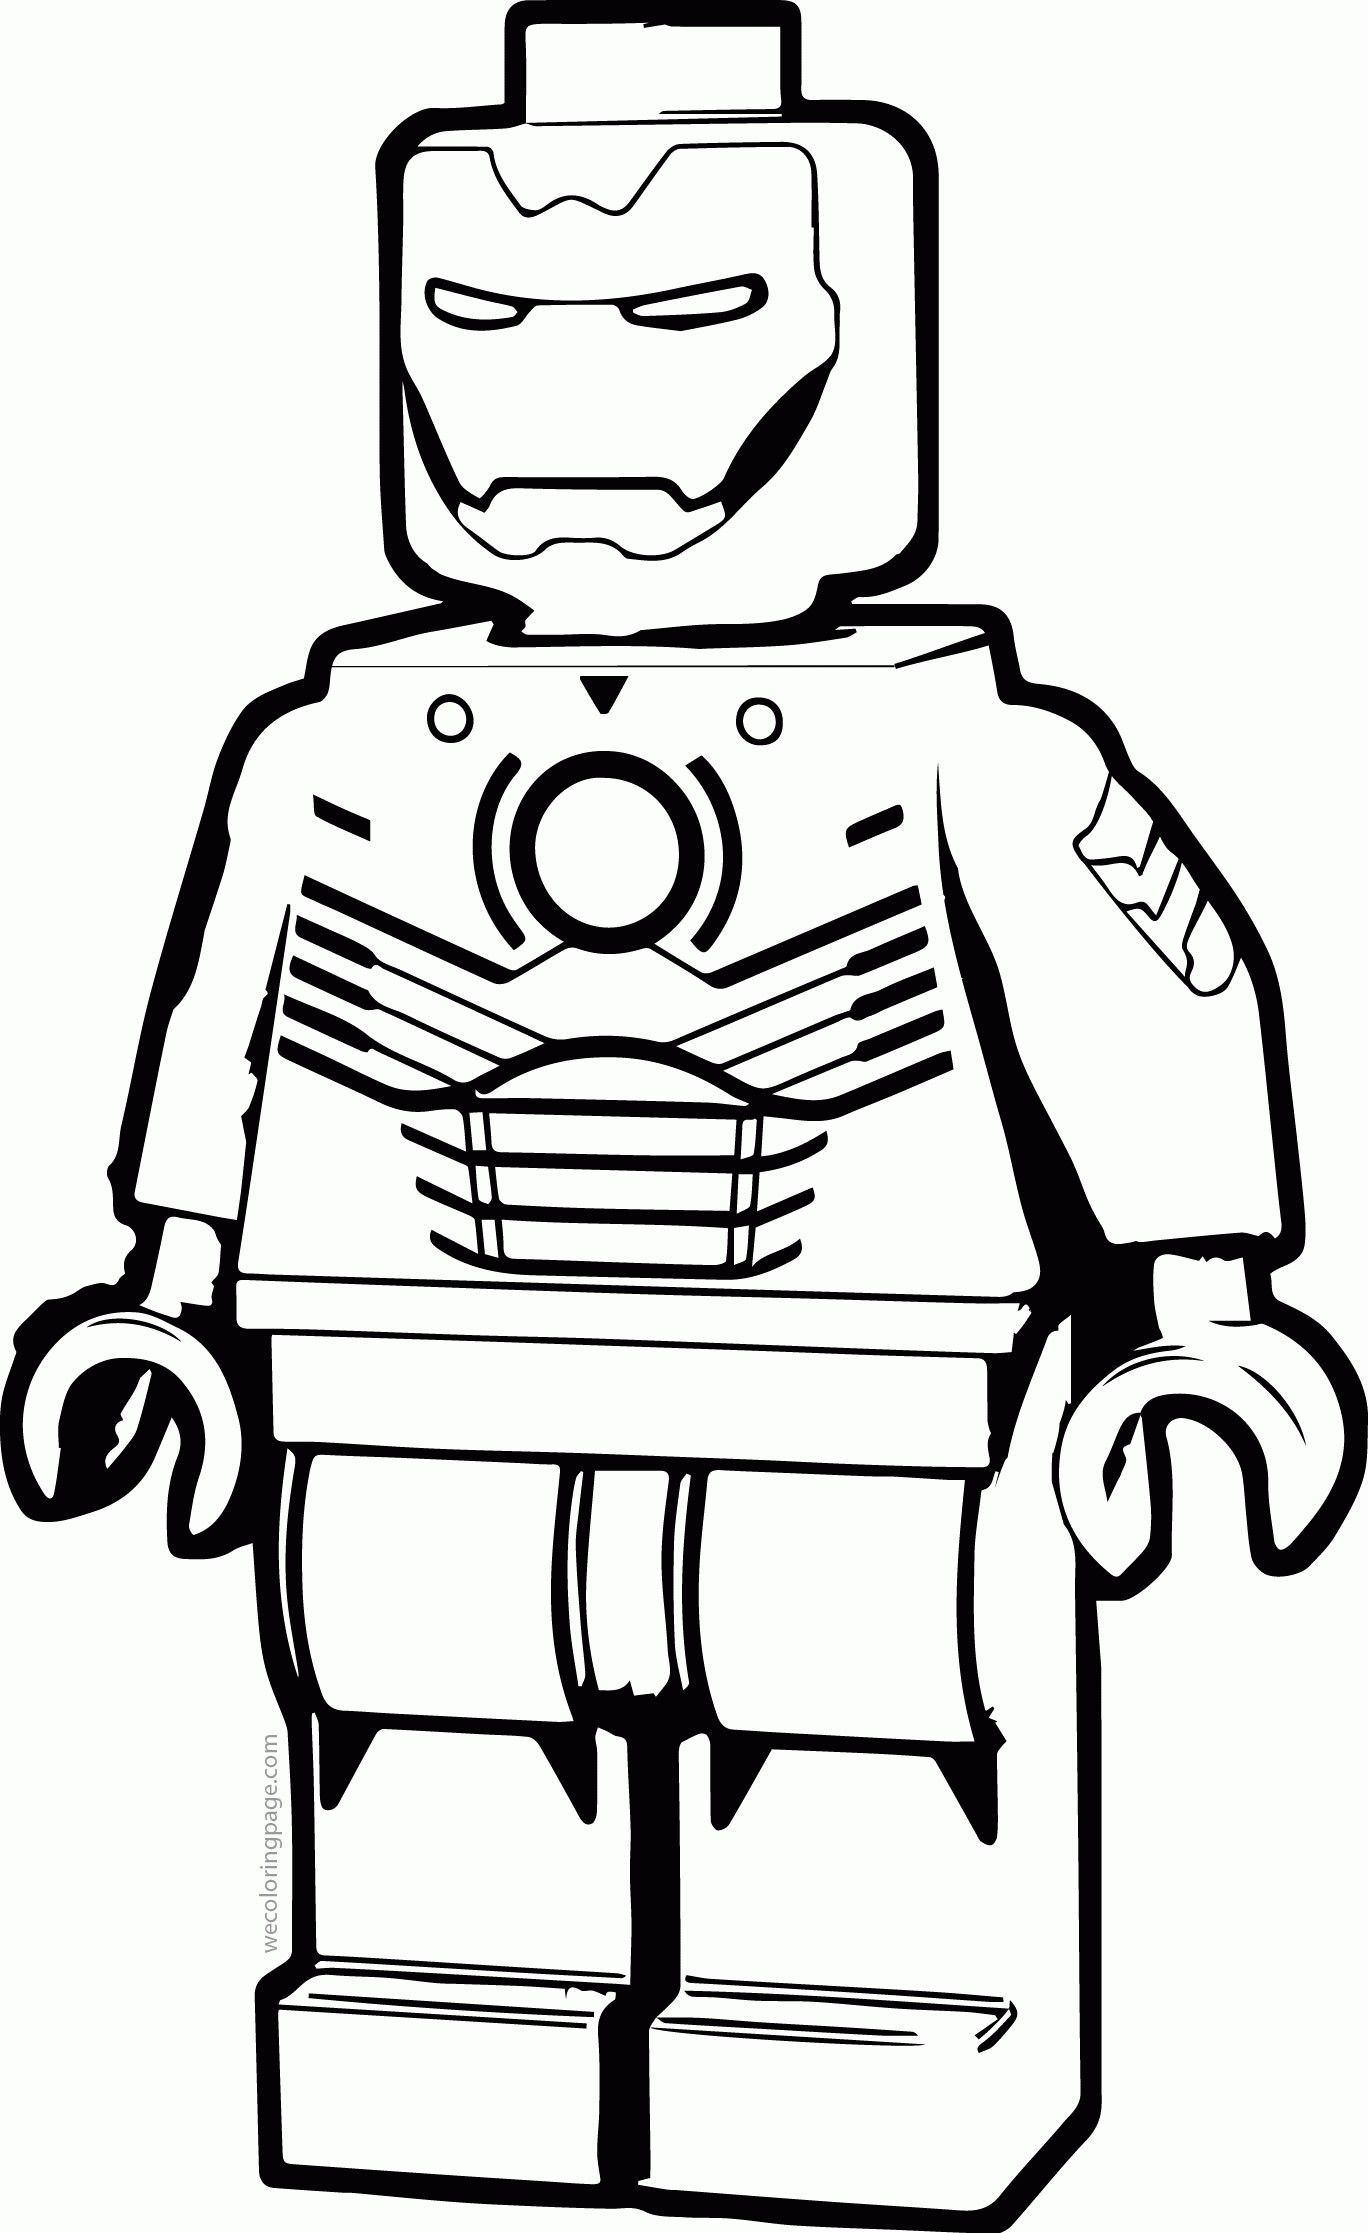 Lego Ant Man Coloring Pages 4 Avec Colouring In Sheets Lego